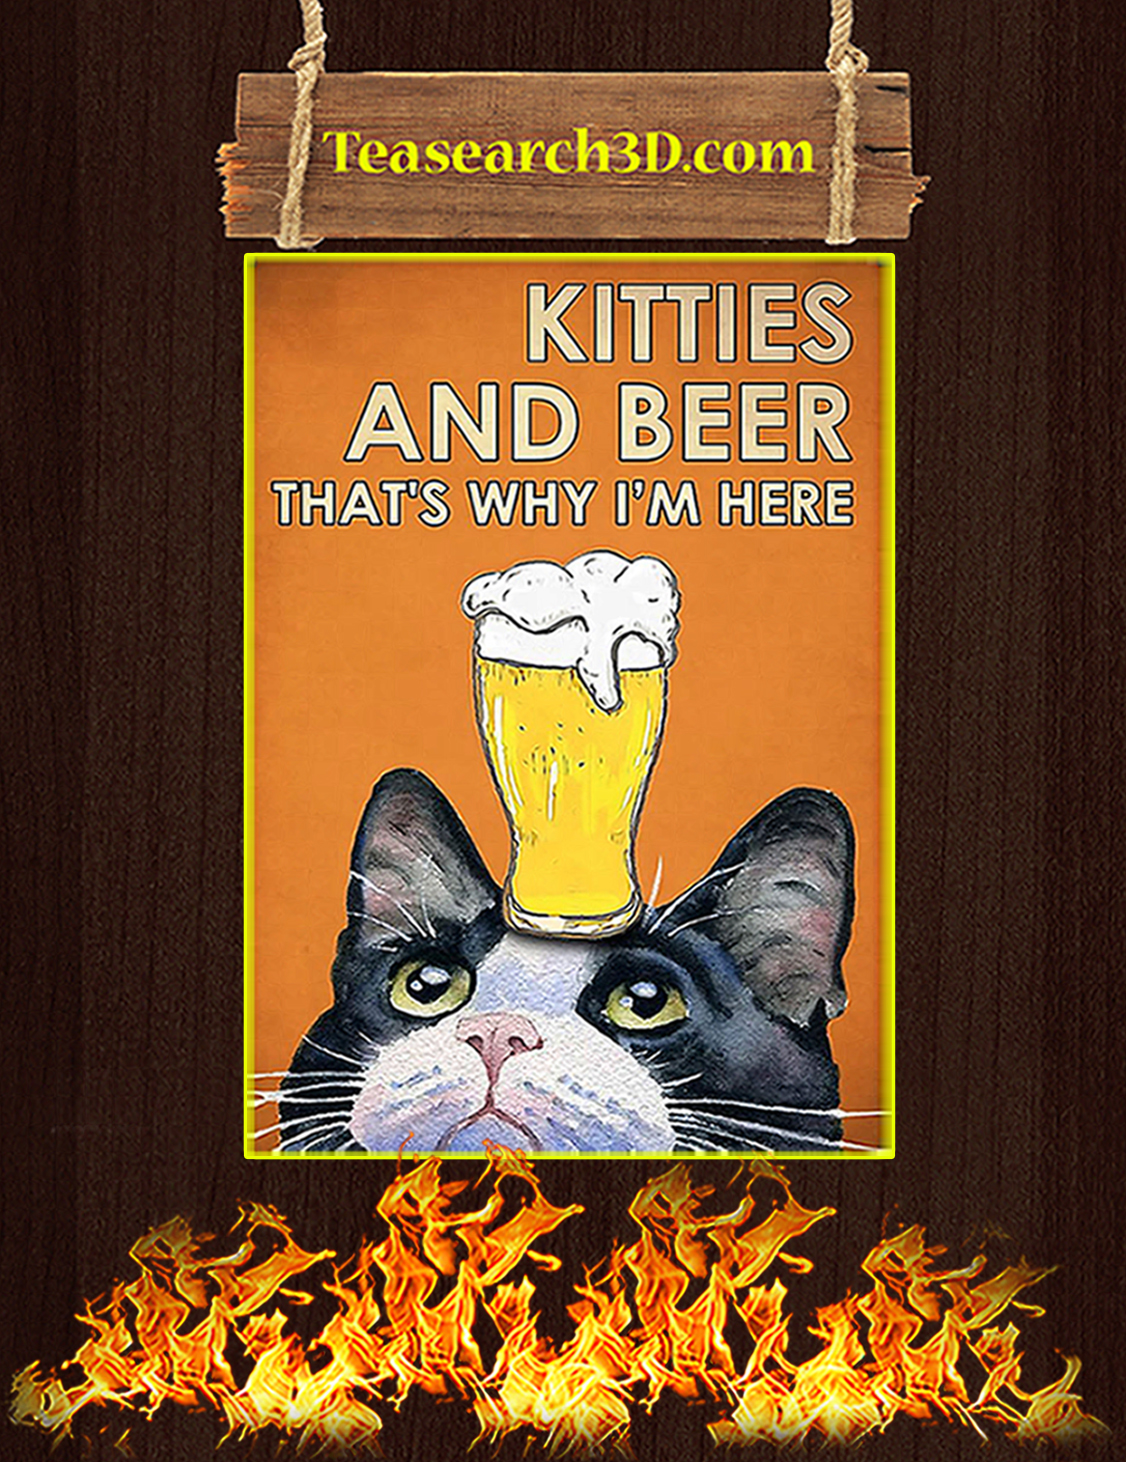 Kitties and beer that's why I'm here poster A3